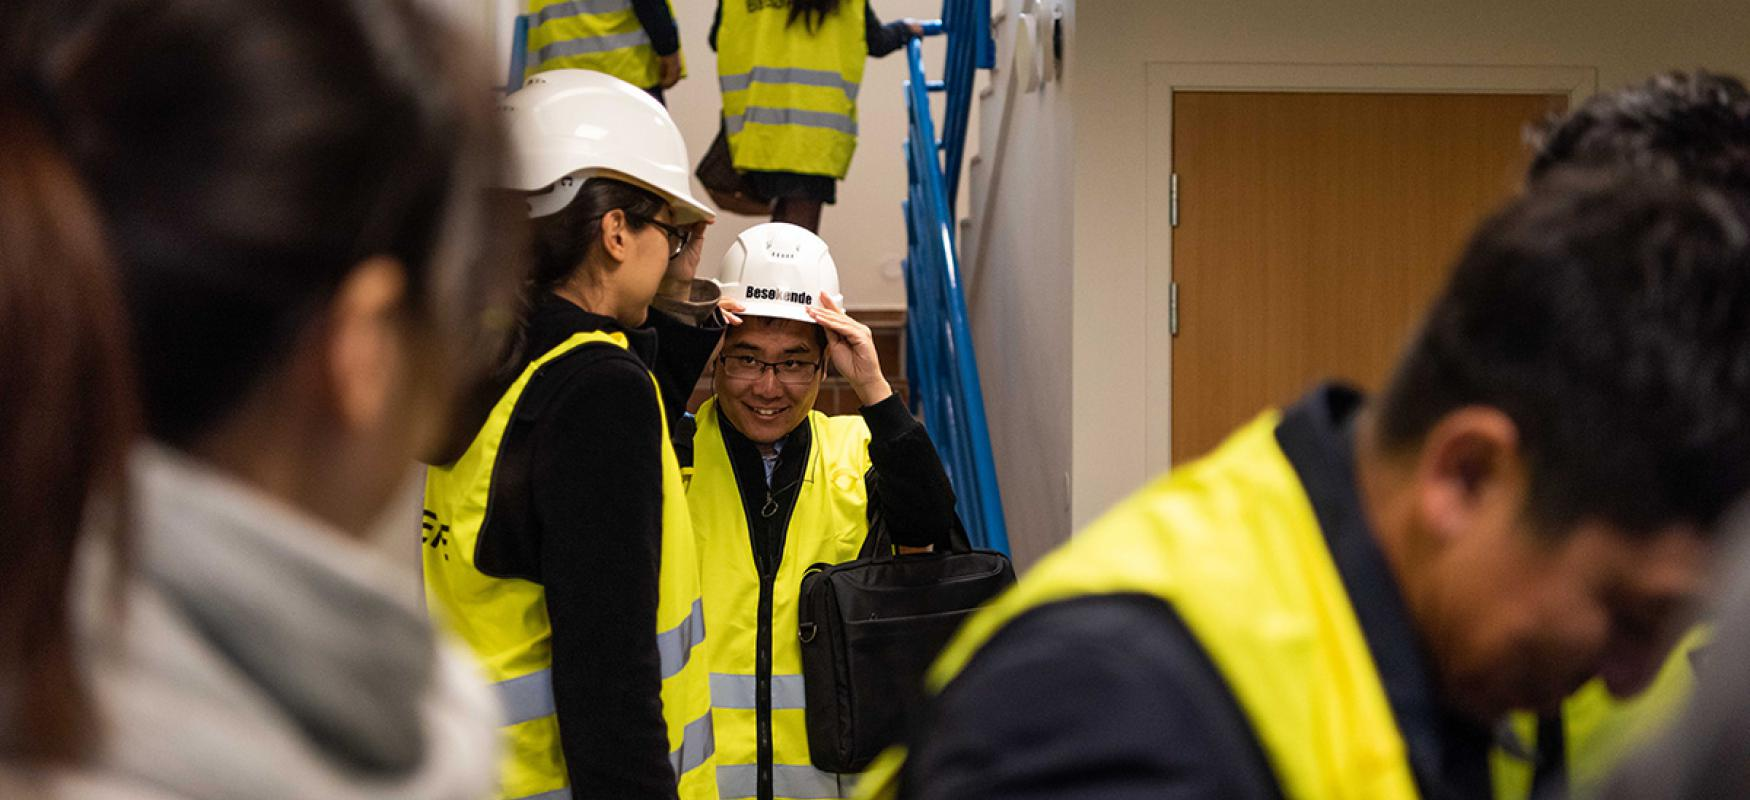 A Chinese delegation wearing yellow vests and hard hats at a sight visit in Norway.